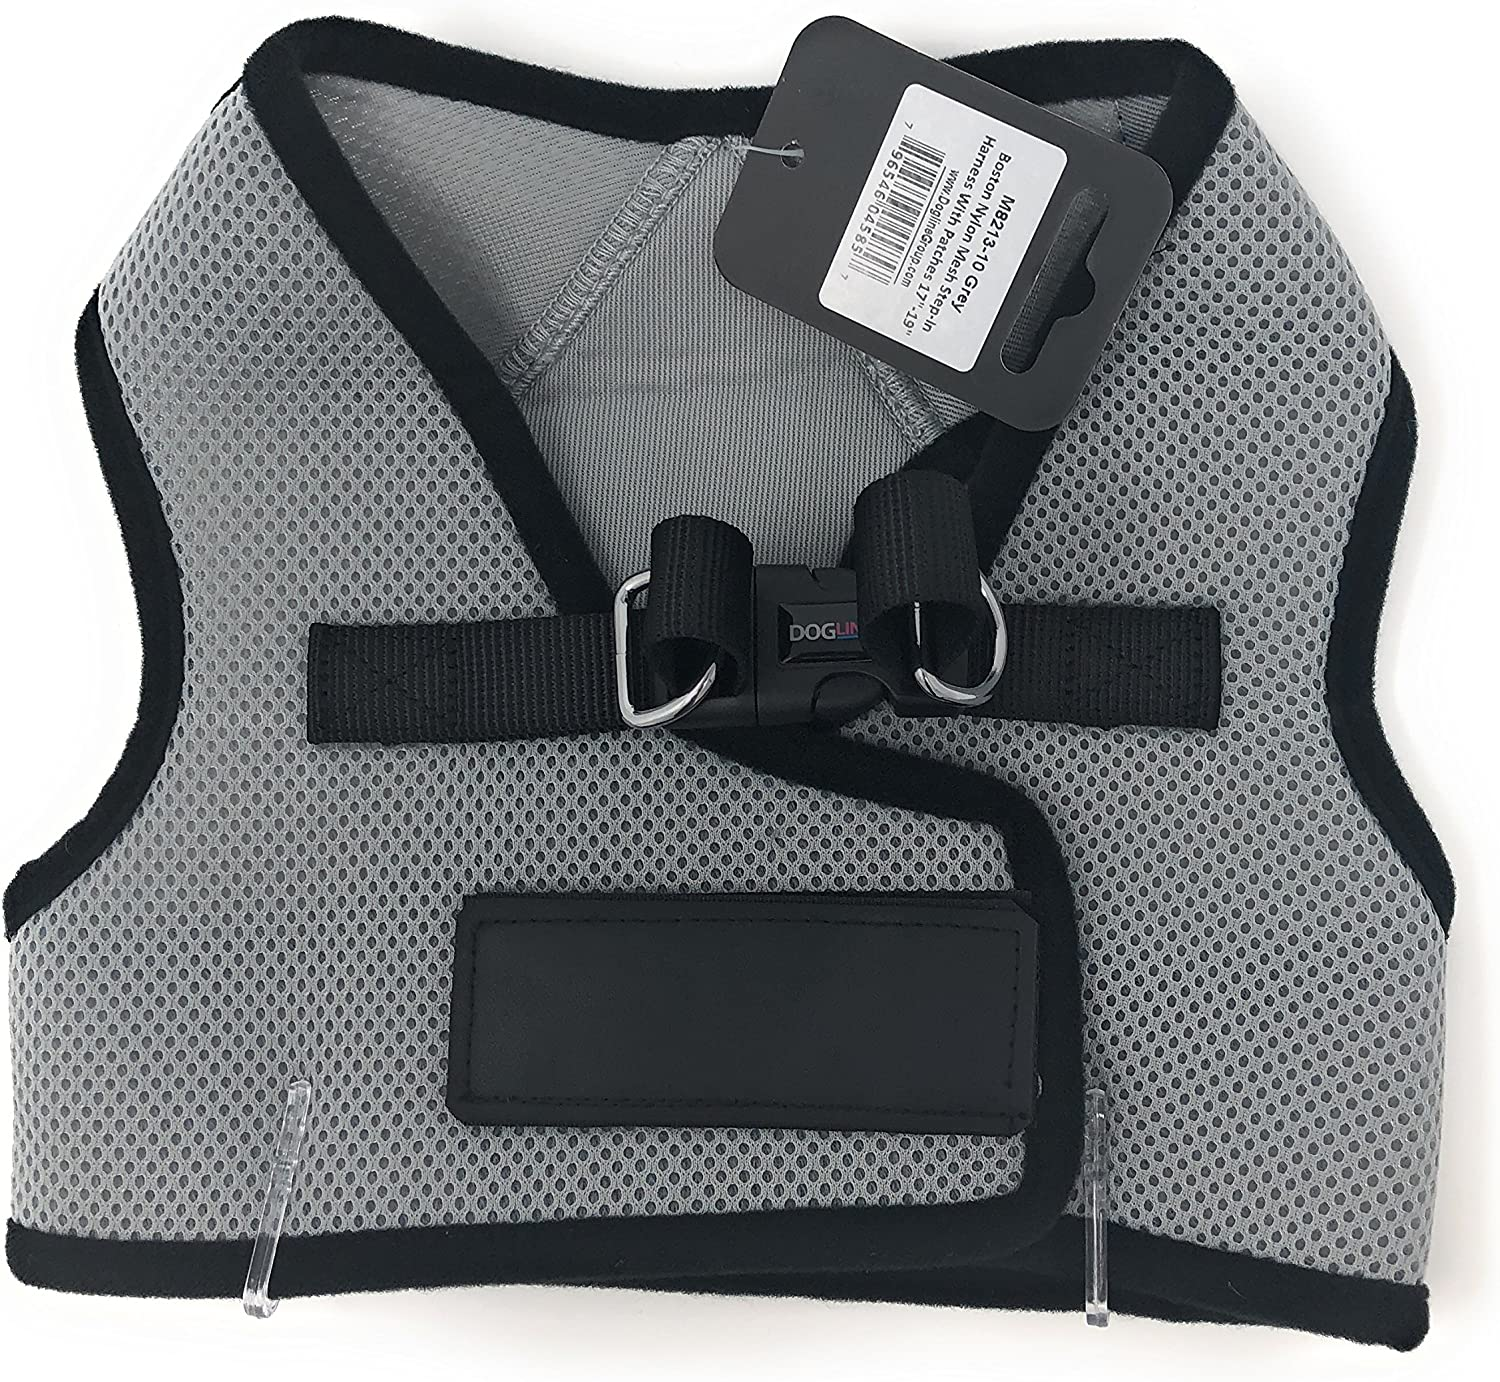 Dogline Mesh Harness Vest   Harness with Patches 1719 in   Charcoal Grey